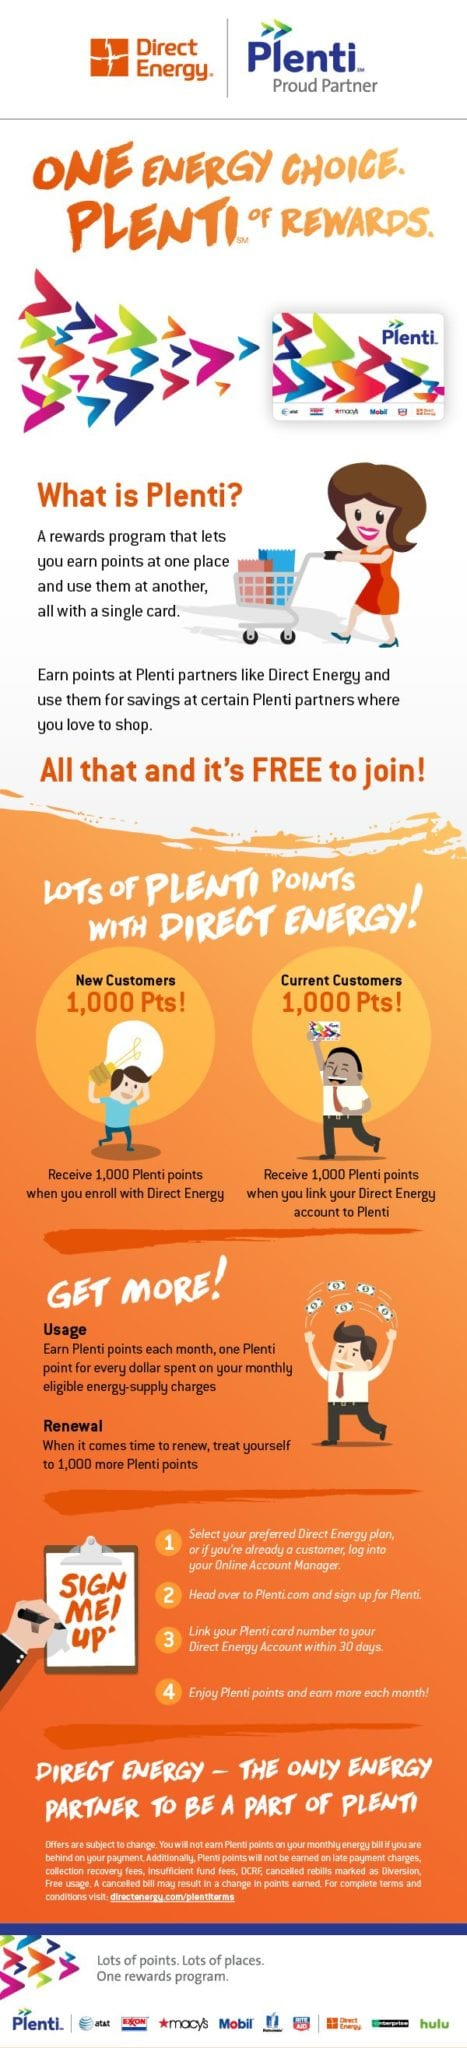 Direct Energy is the only energy provider to be a part of Plenti. #ad #DirectEnergyNewHampshire